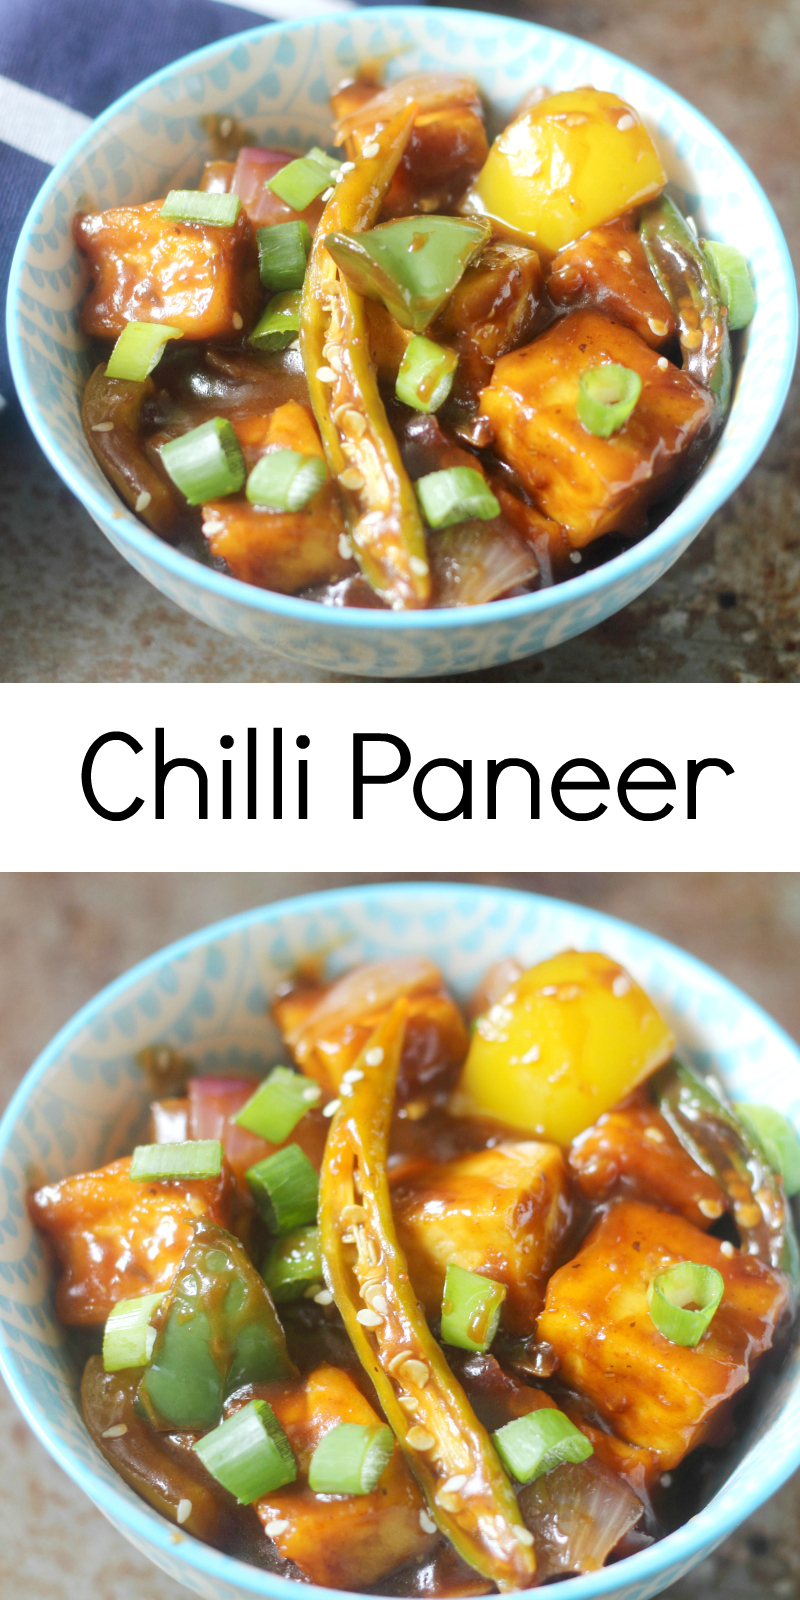 Merry tummy low fat chilli paneer indo chinese recipe low fat chilli paneer indo chinese recipe forumfinder Images